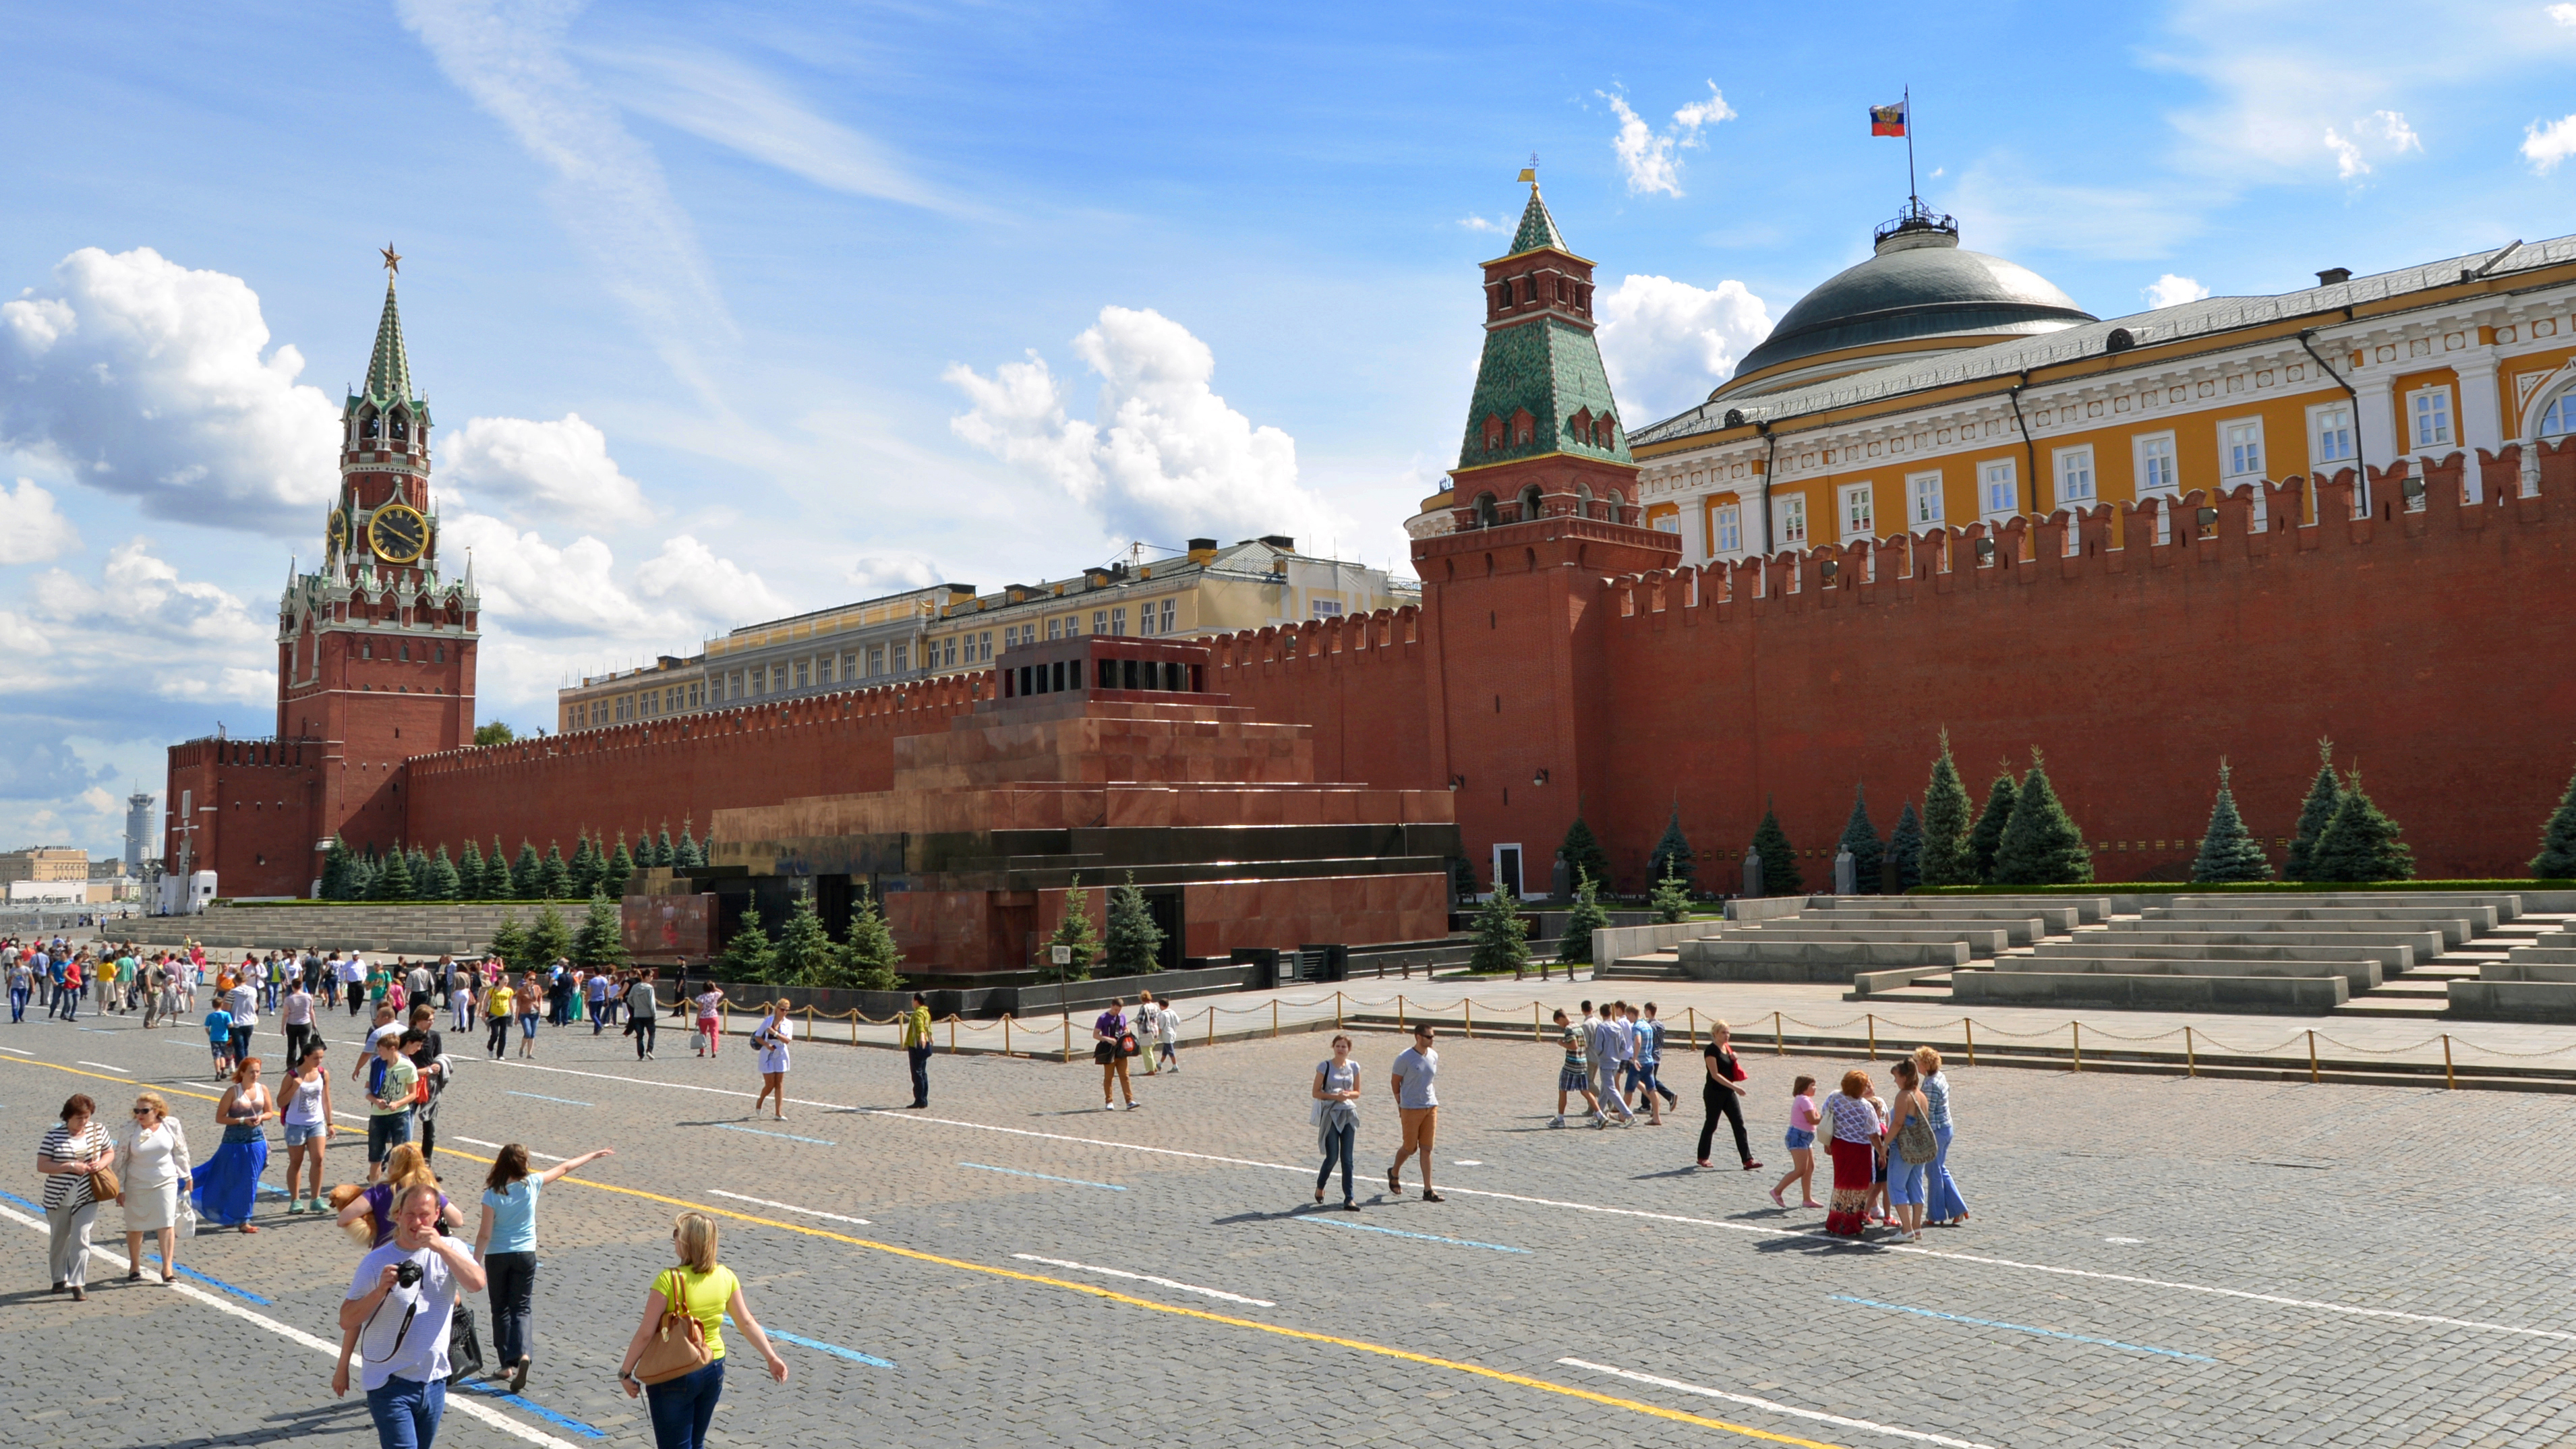 Sights of the city of Vladimir: description and photos 38